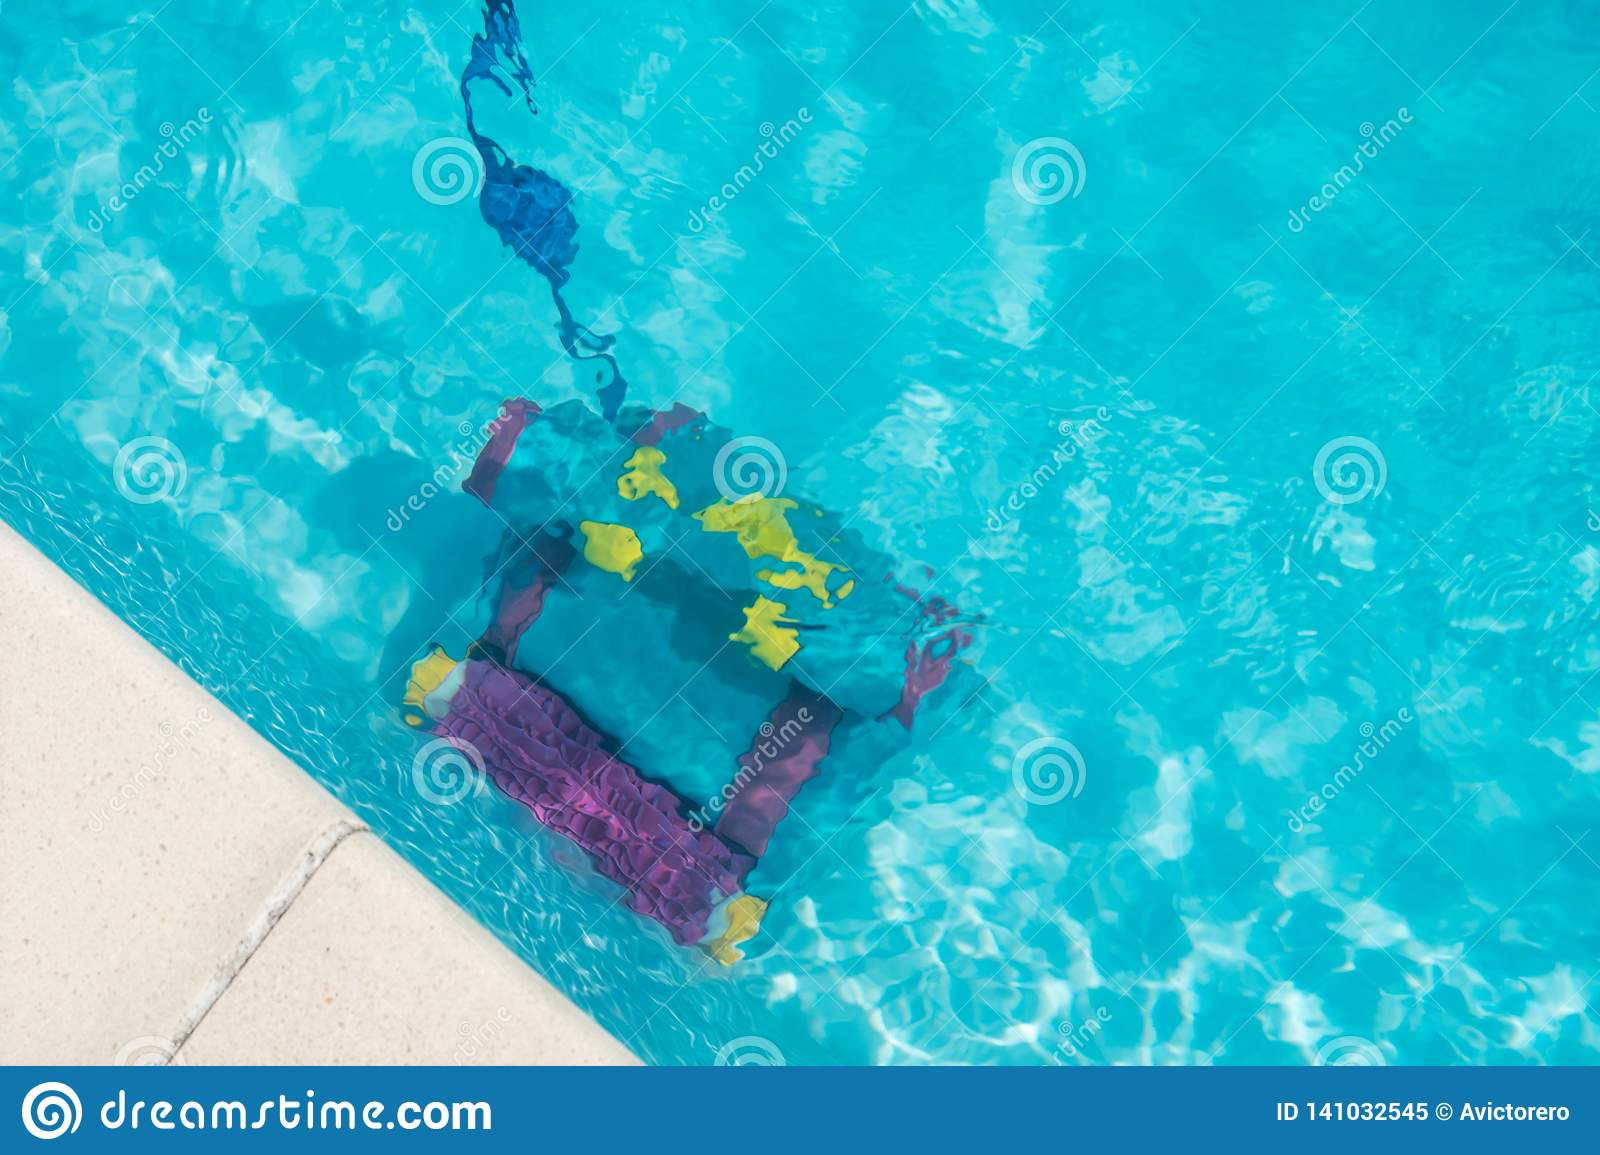 Cleaning Robot For Cleaning The Bottom Of Swimming Pool ...